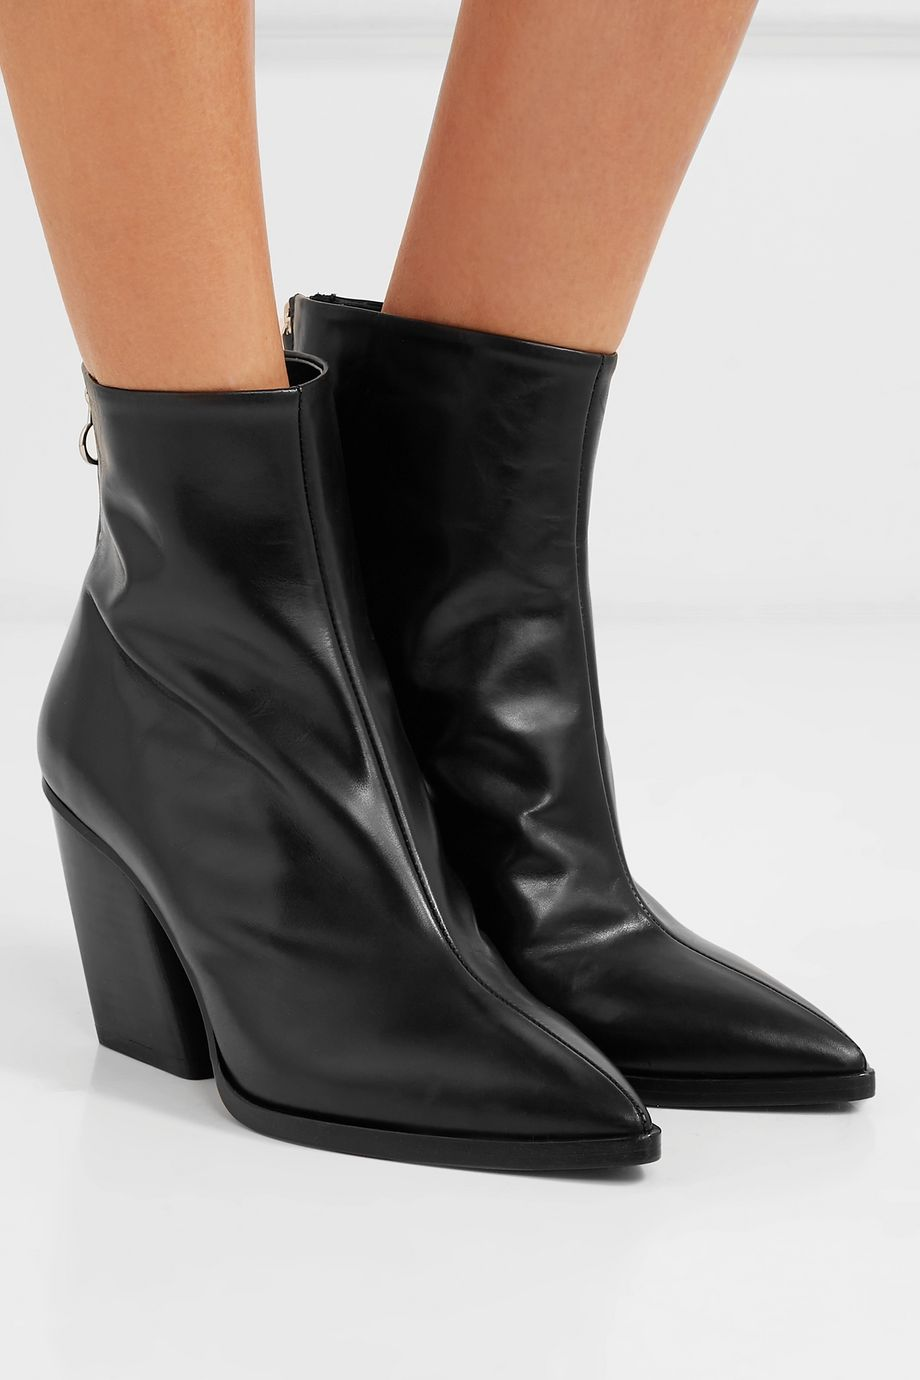 aeydē Cherry leather ankle boots